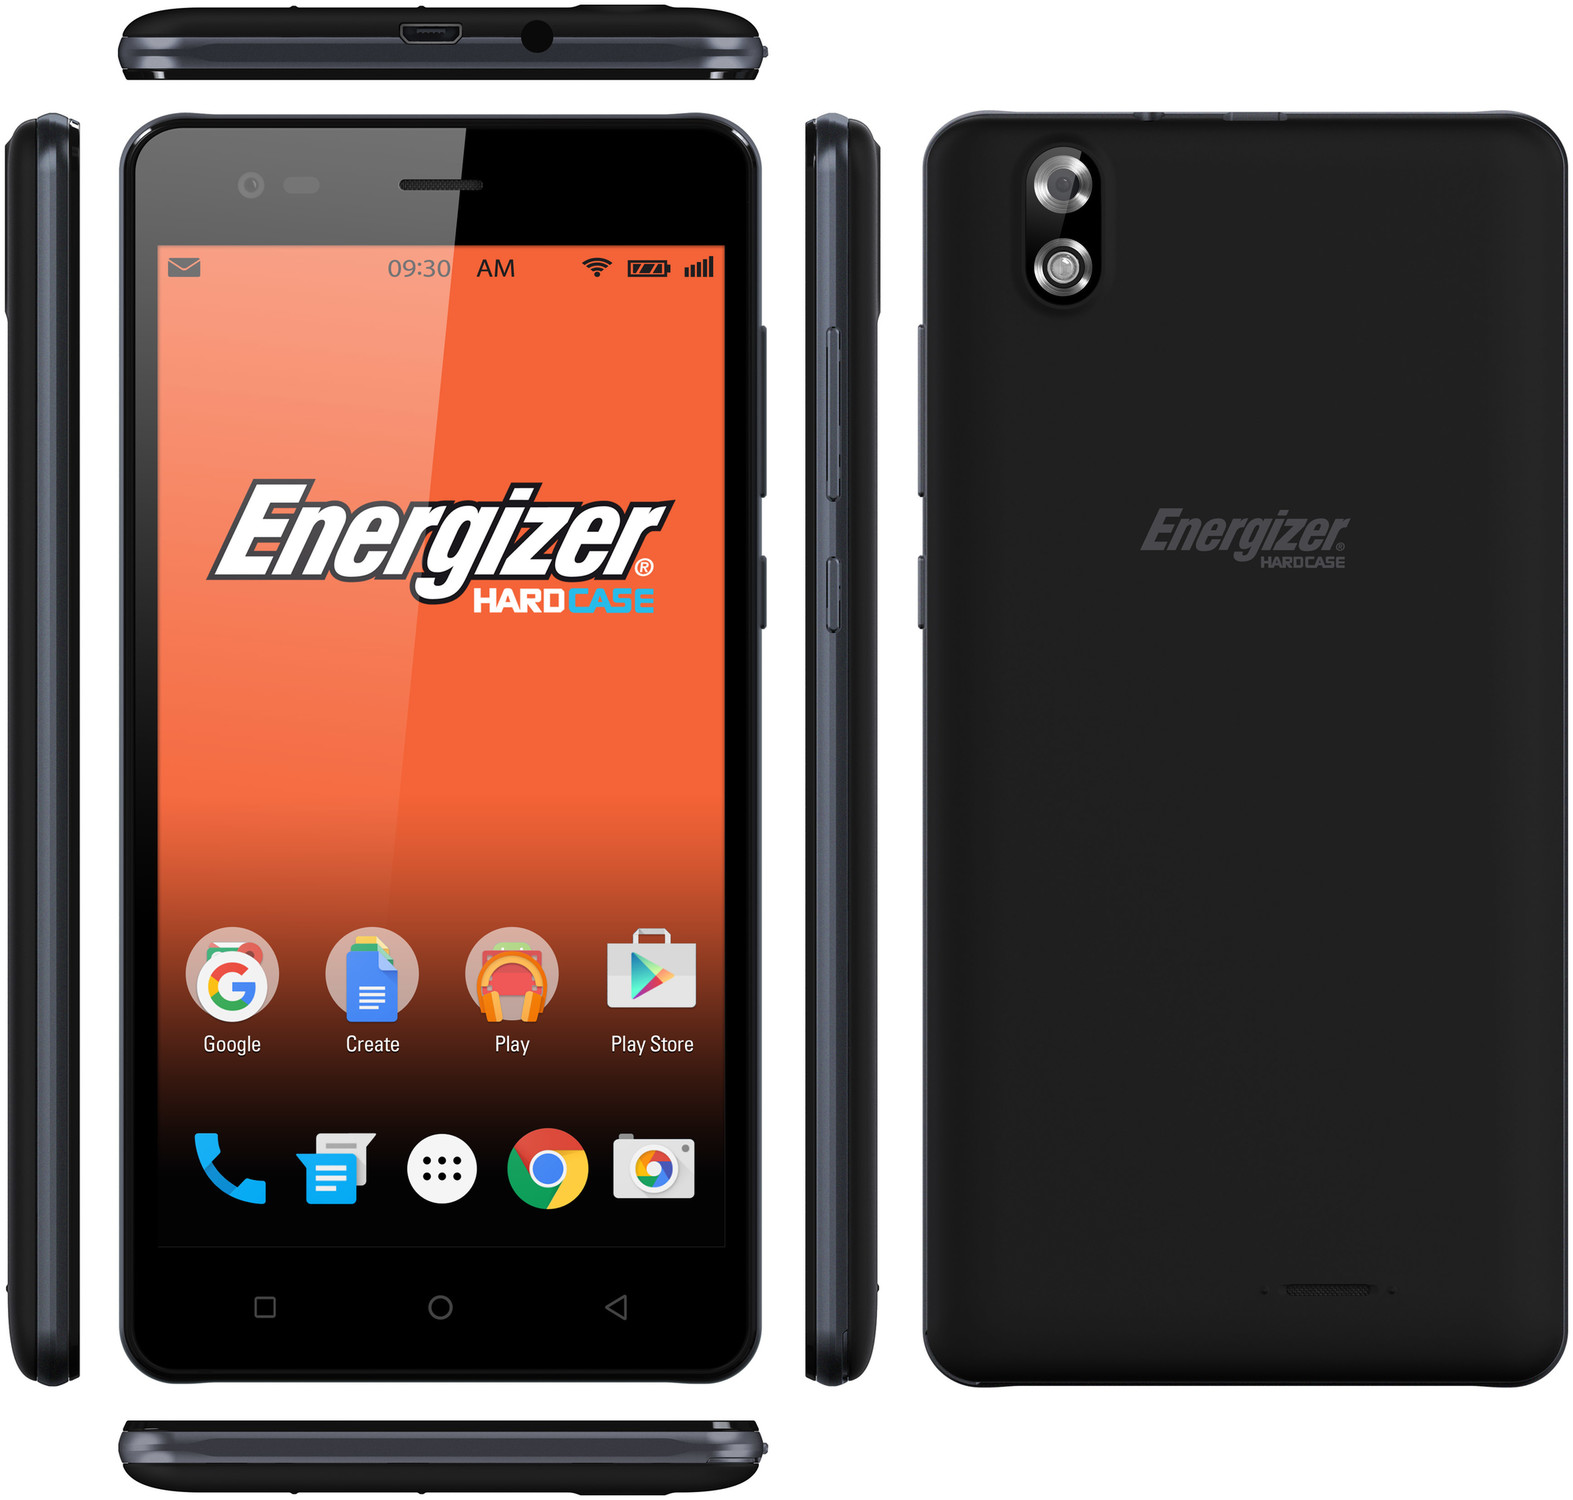 Energizer Energy S550 Specs And Price Phonegg Uk